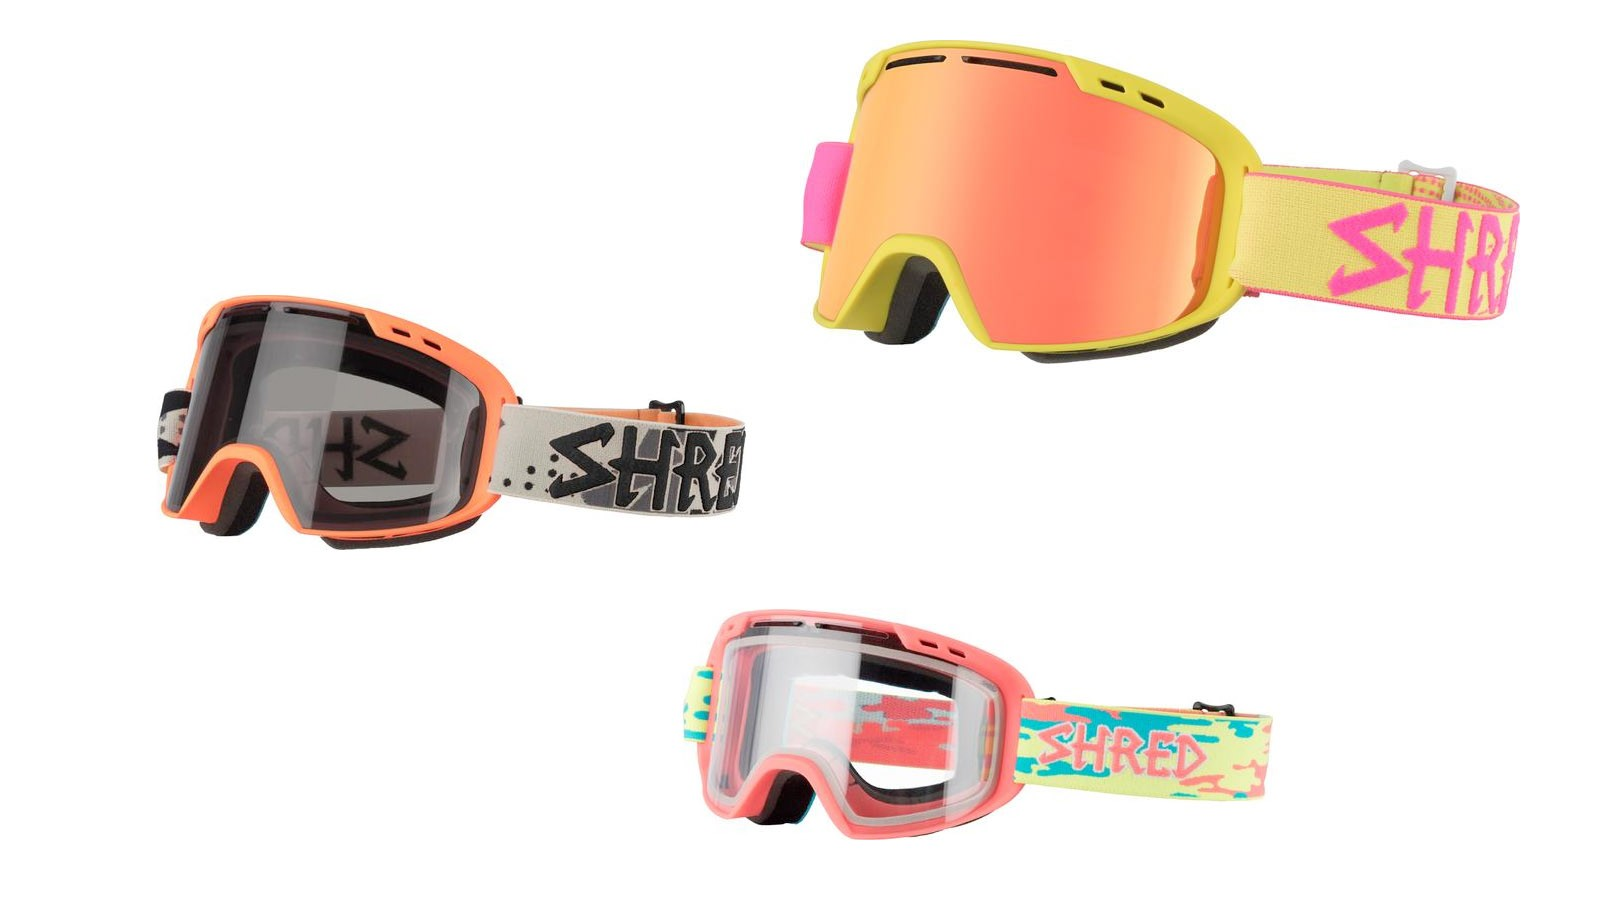 There is nothing better than a fresh pair of scratch-free goggles